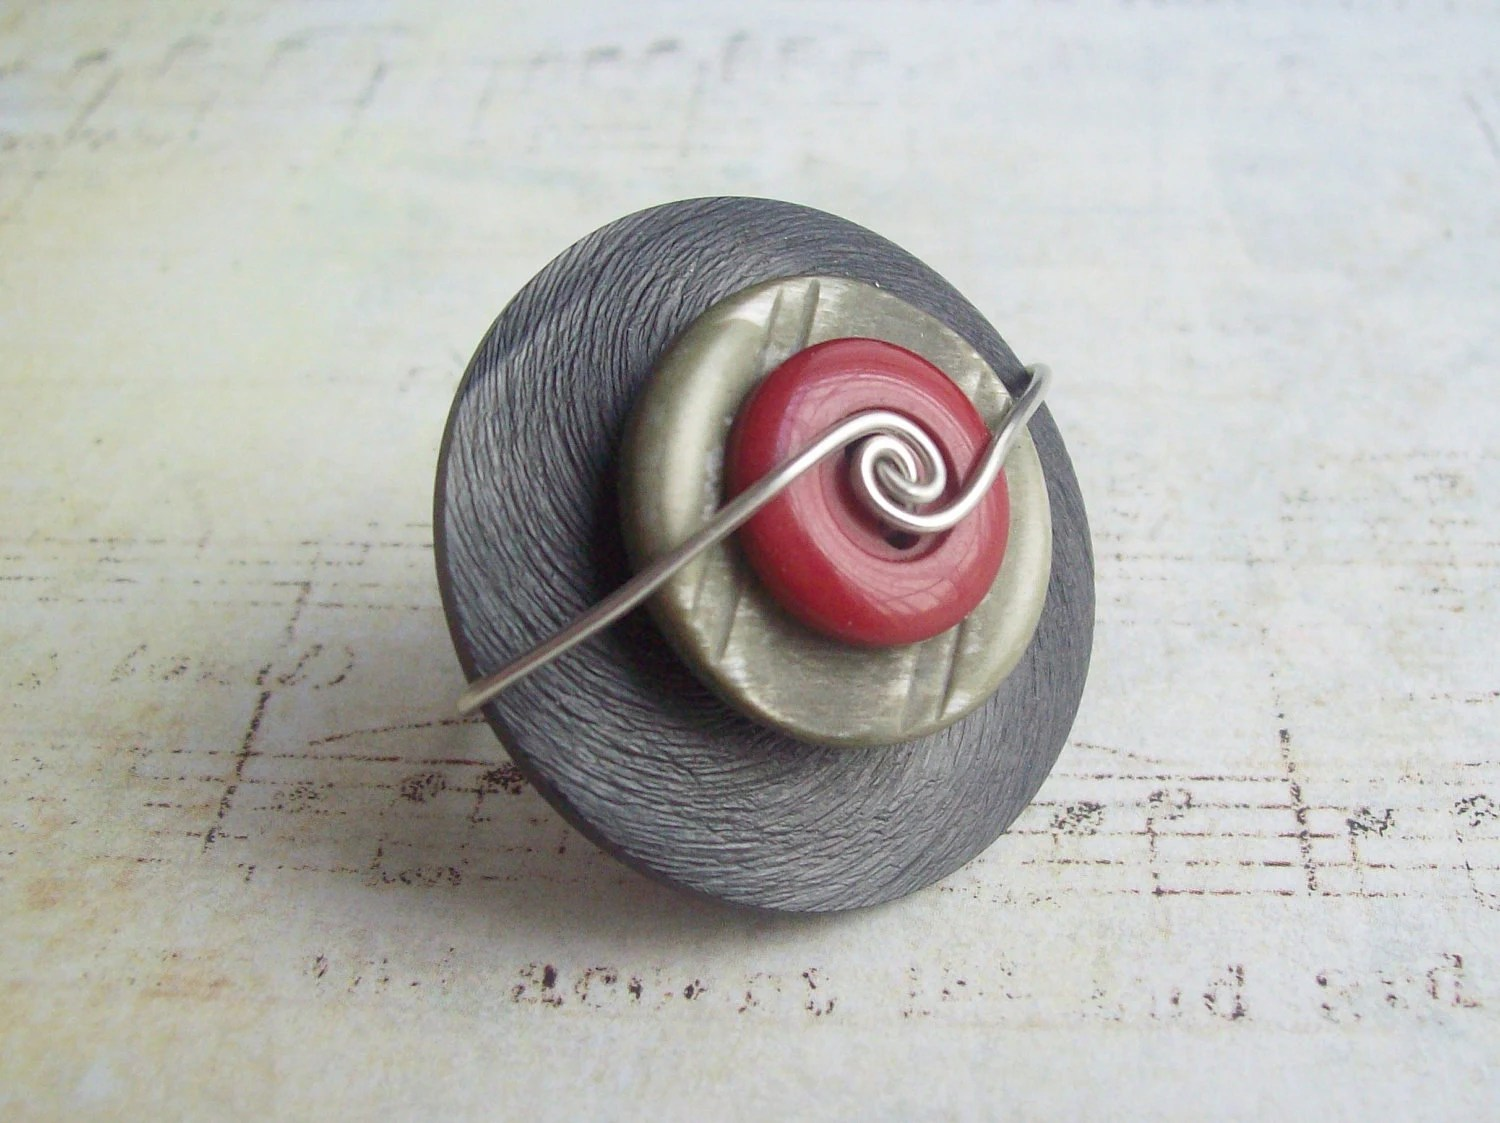 Vintage Button Ring in Black, Grey & Red - DixiesNightOwl